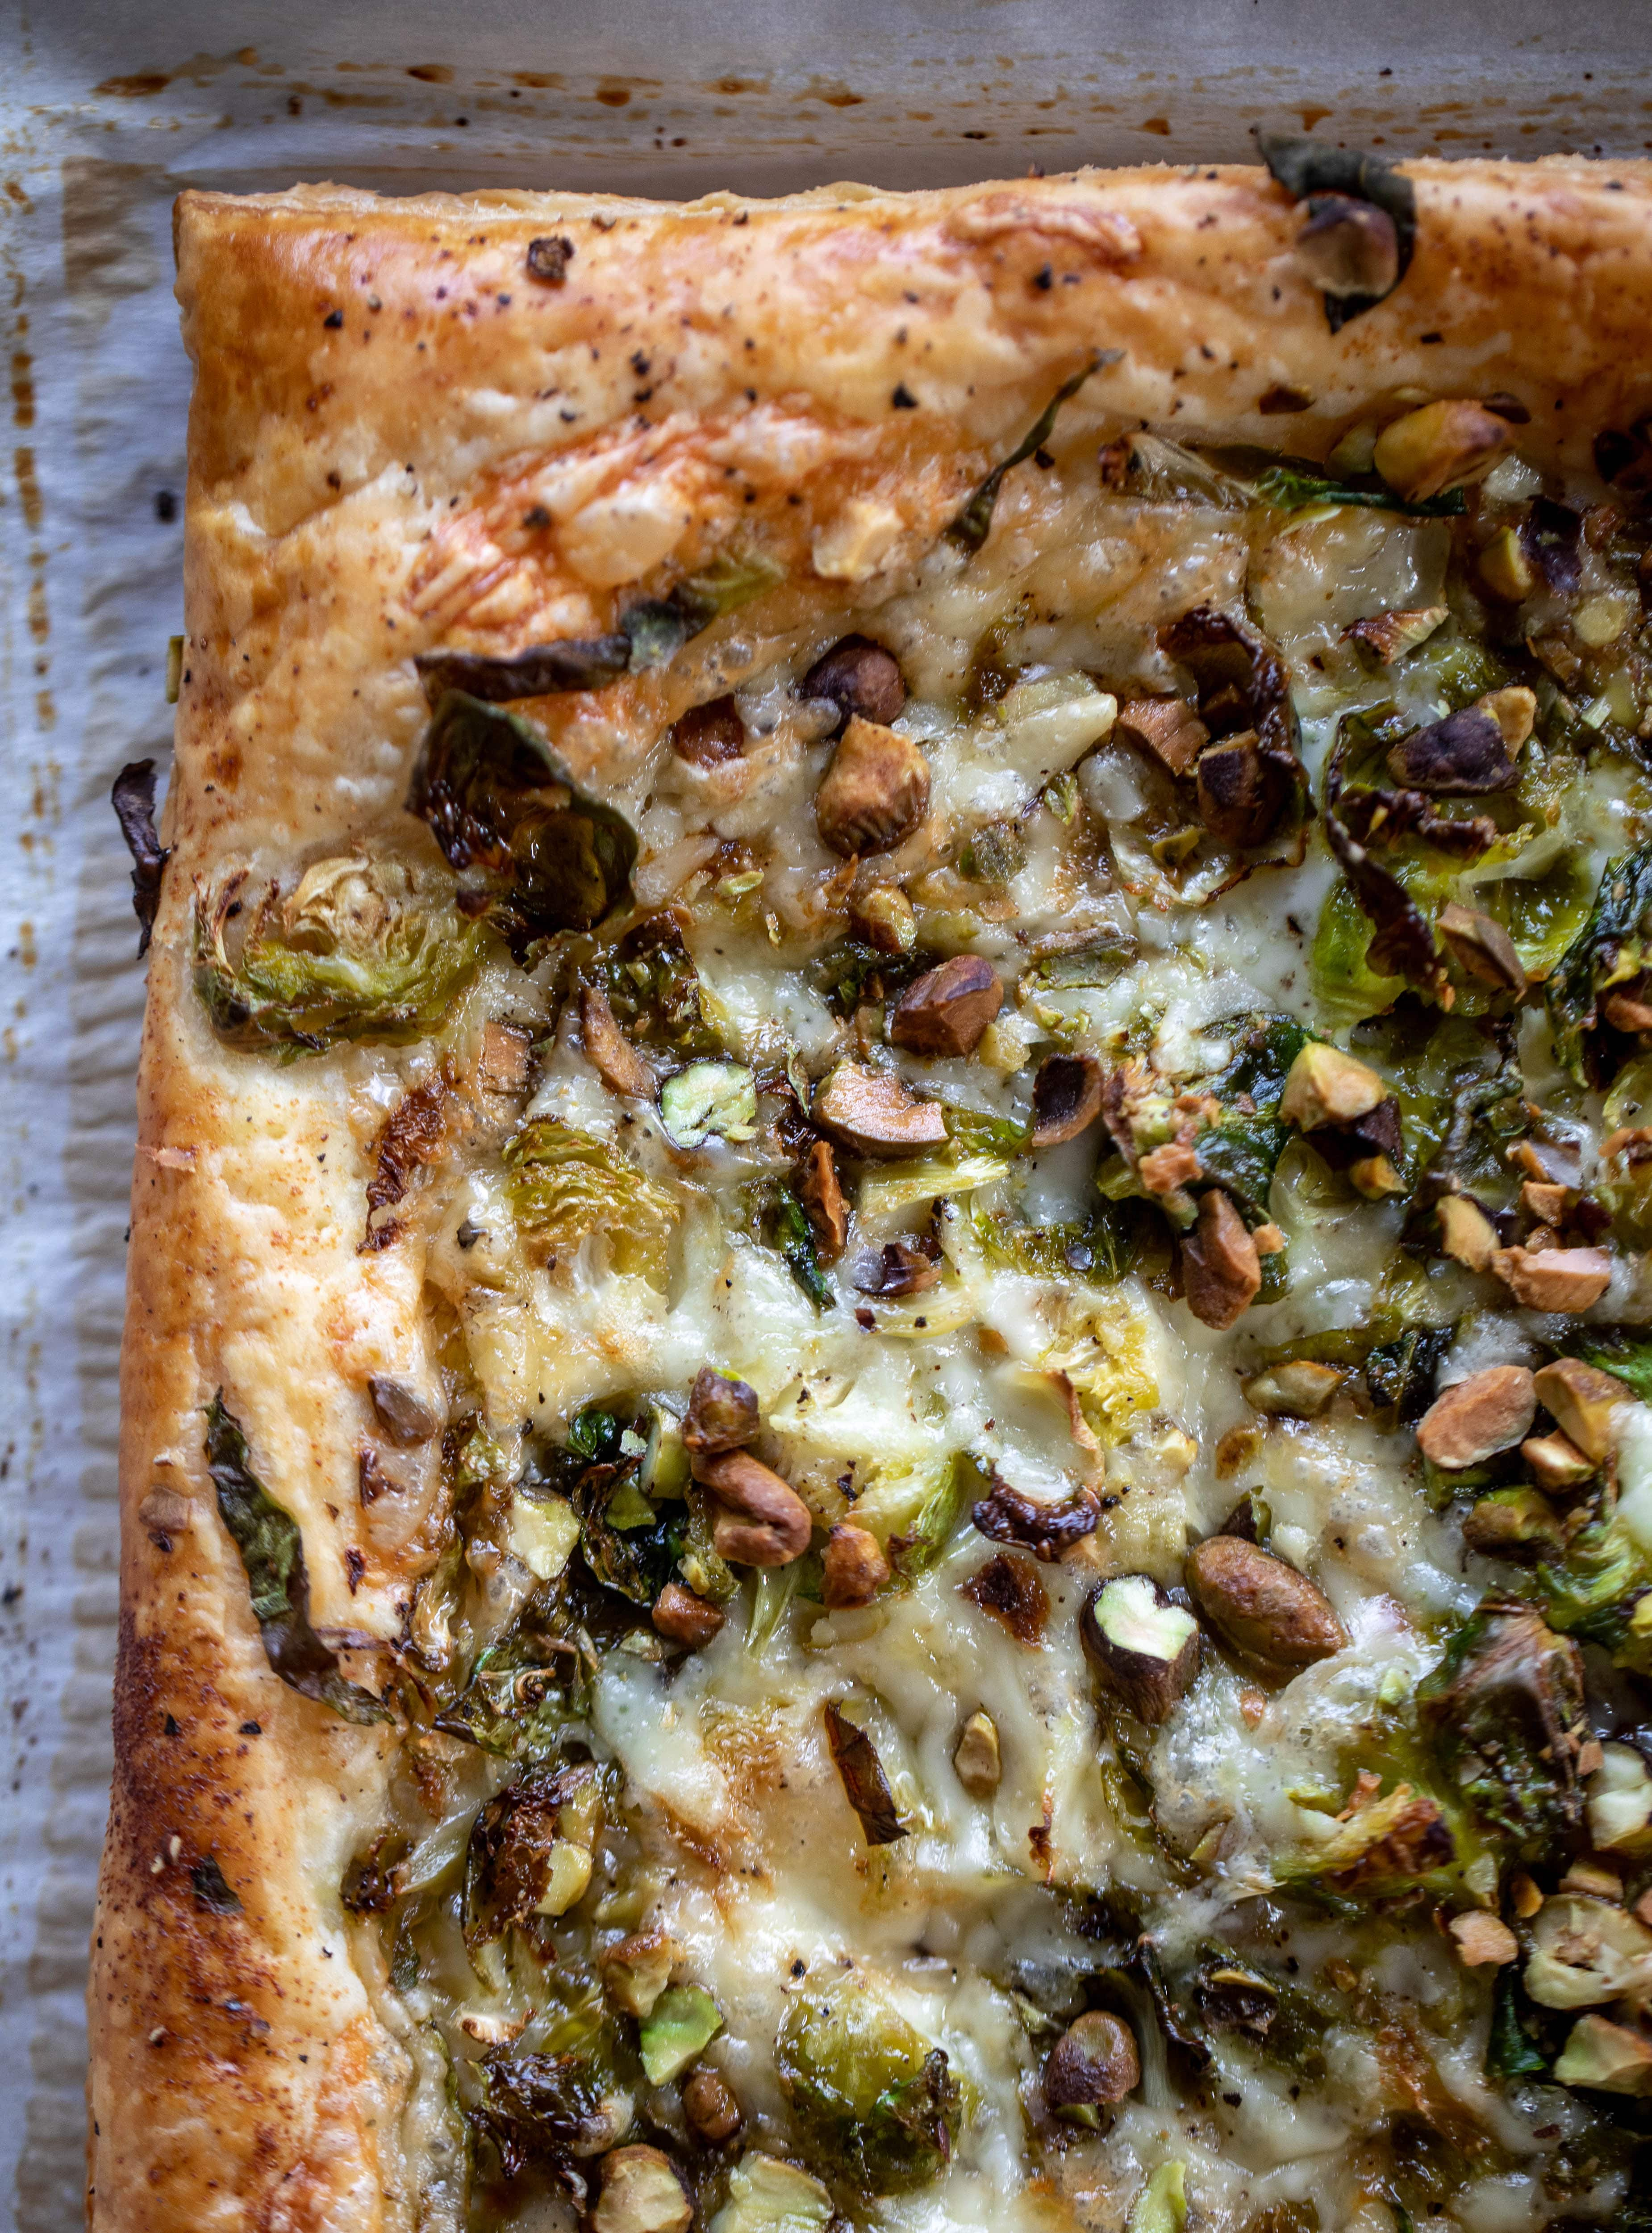 This brussels sprouts tart has a ton of flavor! Melty fontina, sliced brussels and crunchy pistachios all on top of puff pastry. Delish!